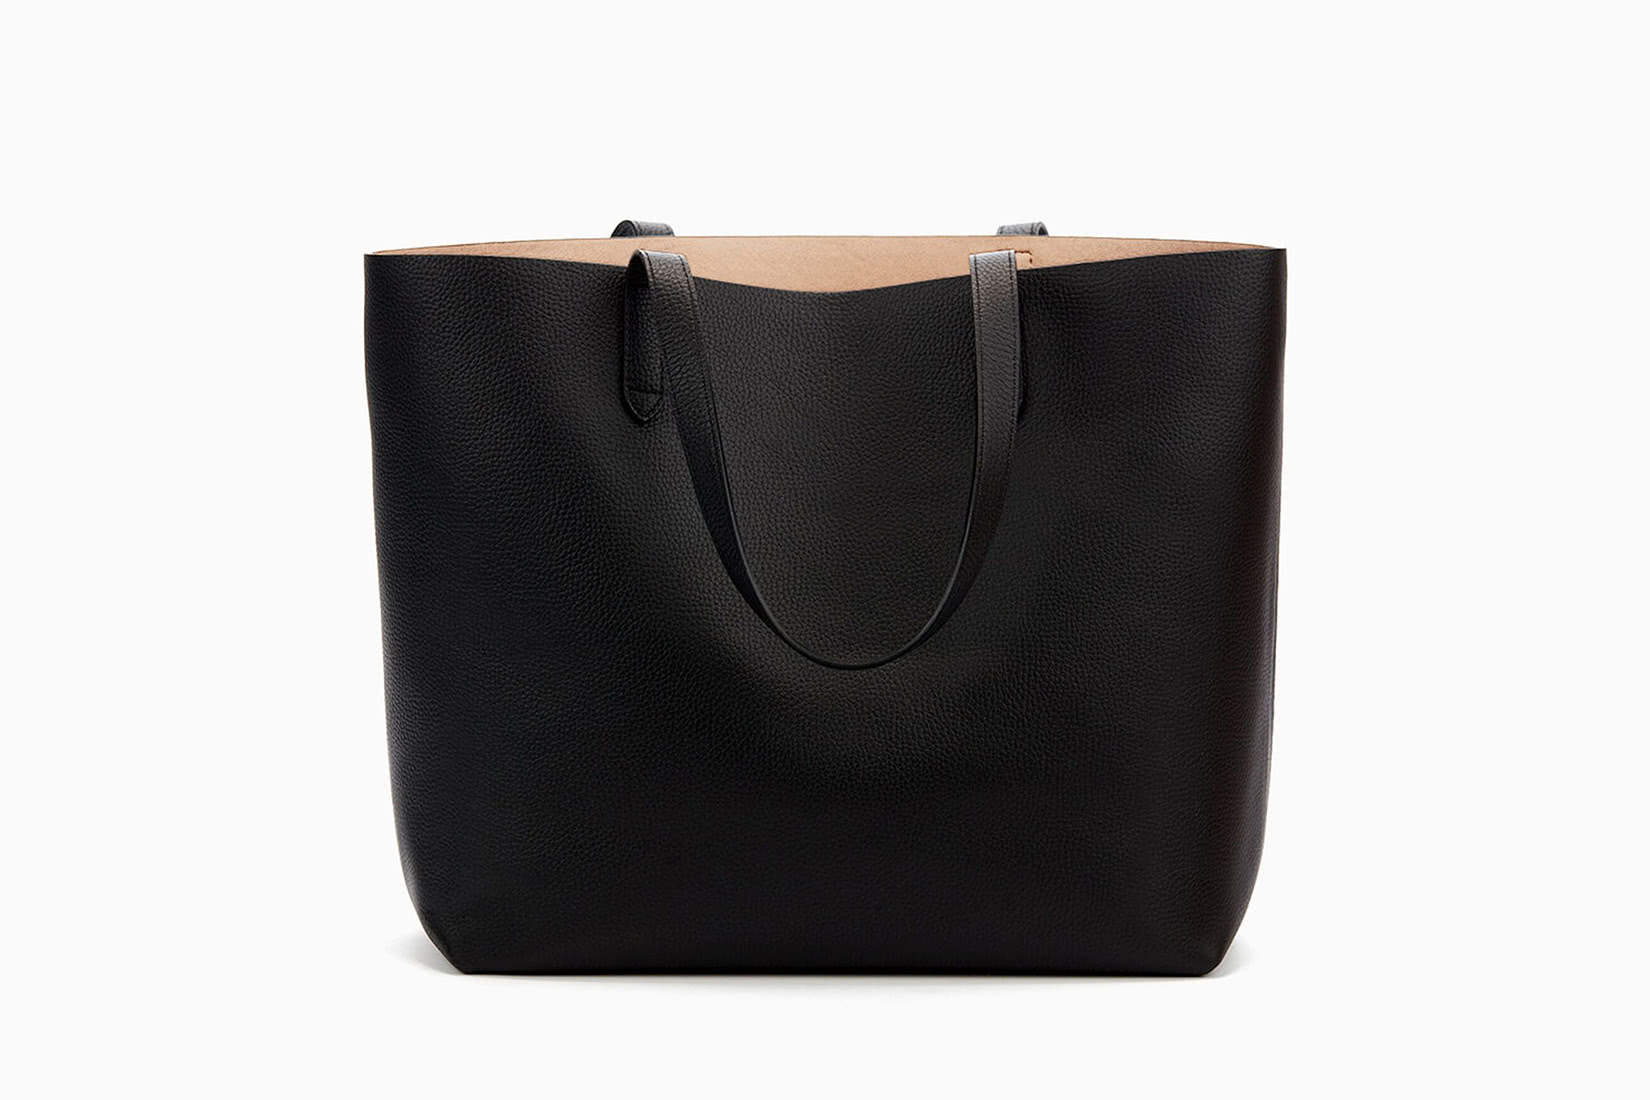 best women work bags cuyana classic tote review - Luxe Digital